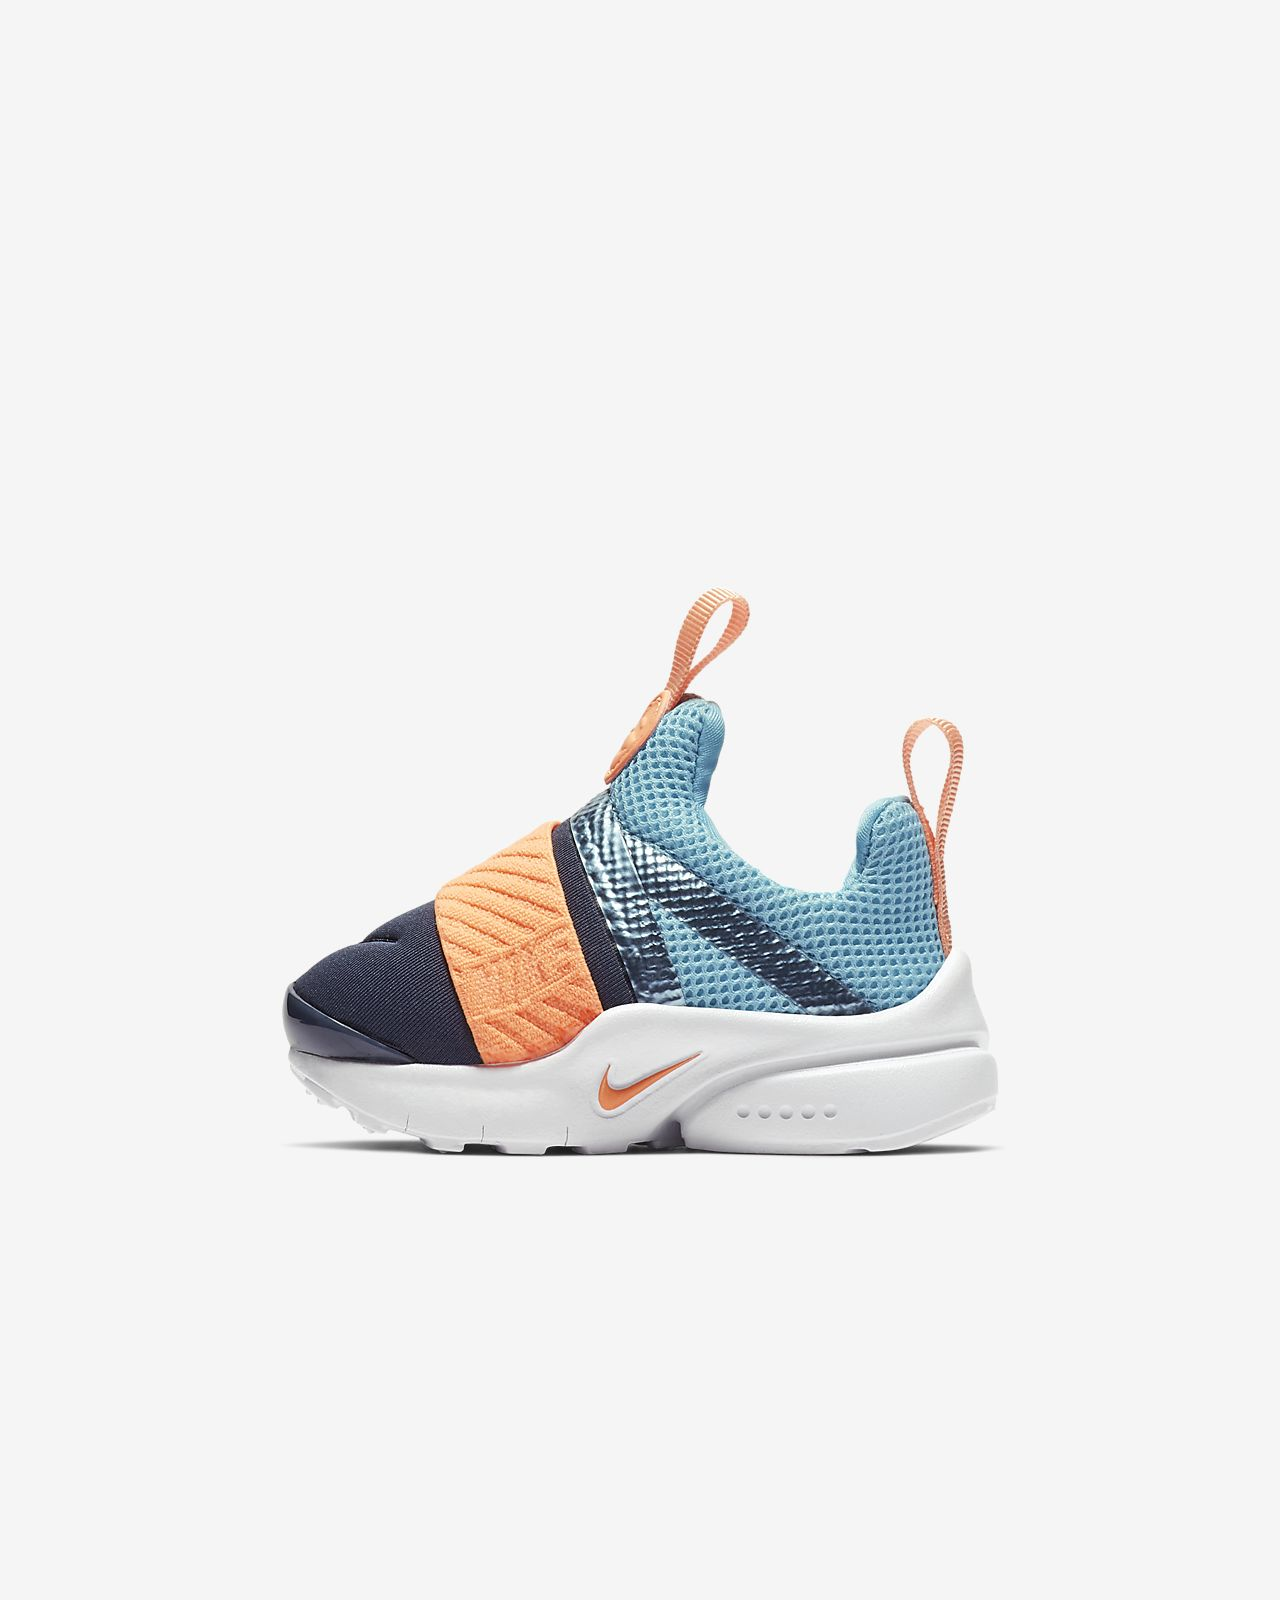 14f0dcd57f9 Nike Presto Extreme Infant Toddler Shoe. Nike.com